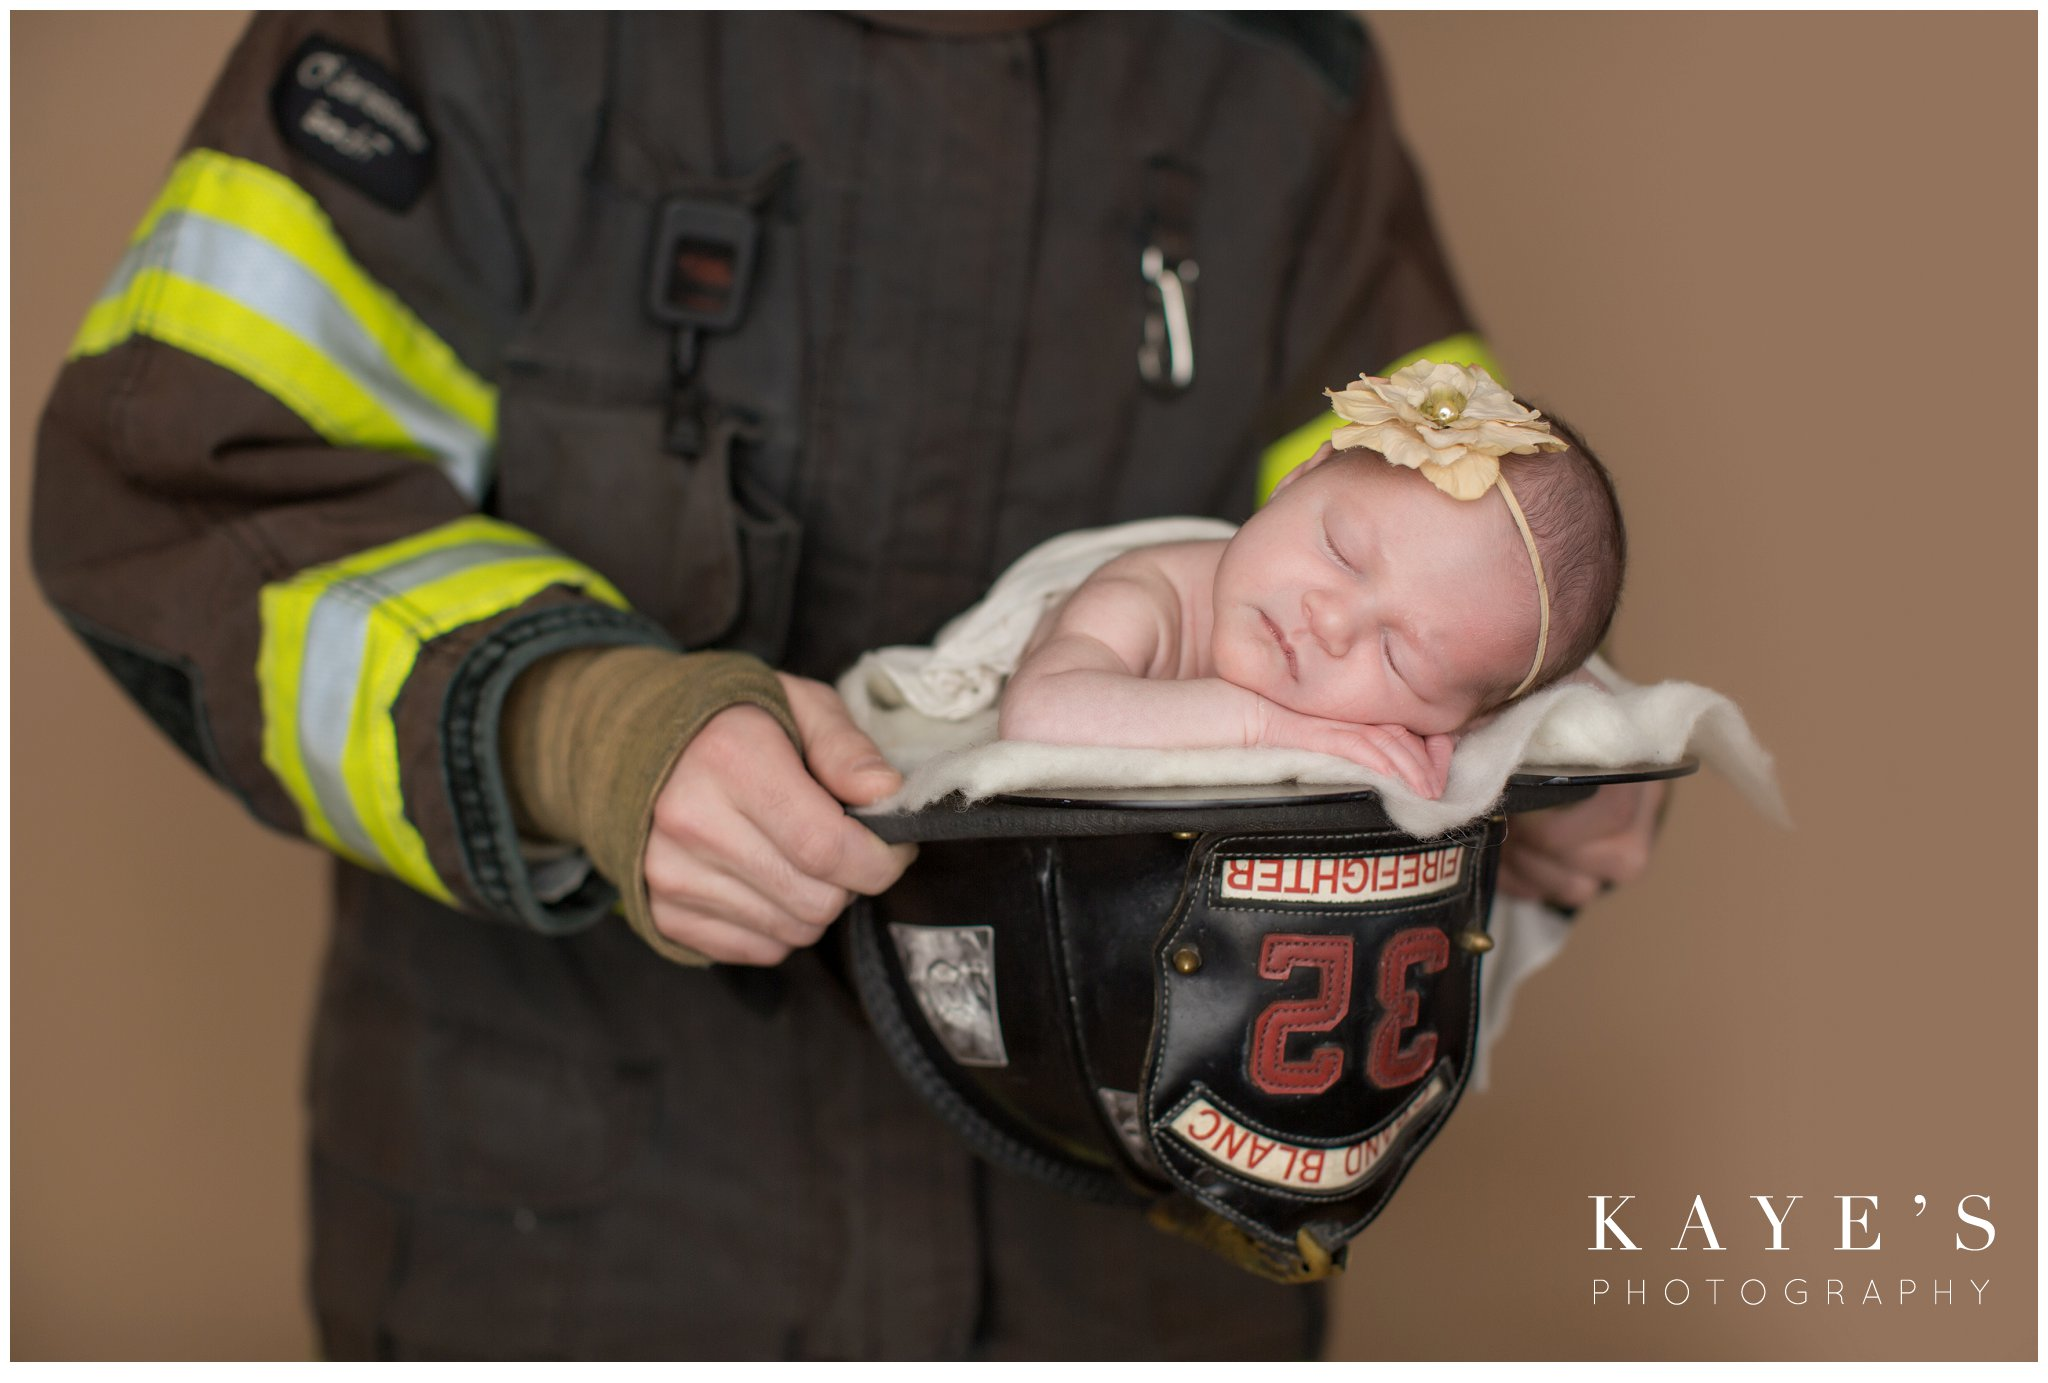 Daddy dressed in fireman gear with newborn baby girl in fireman hat